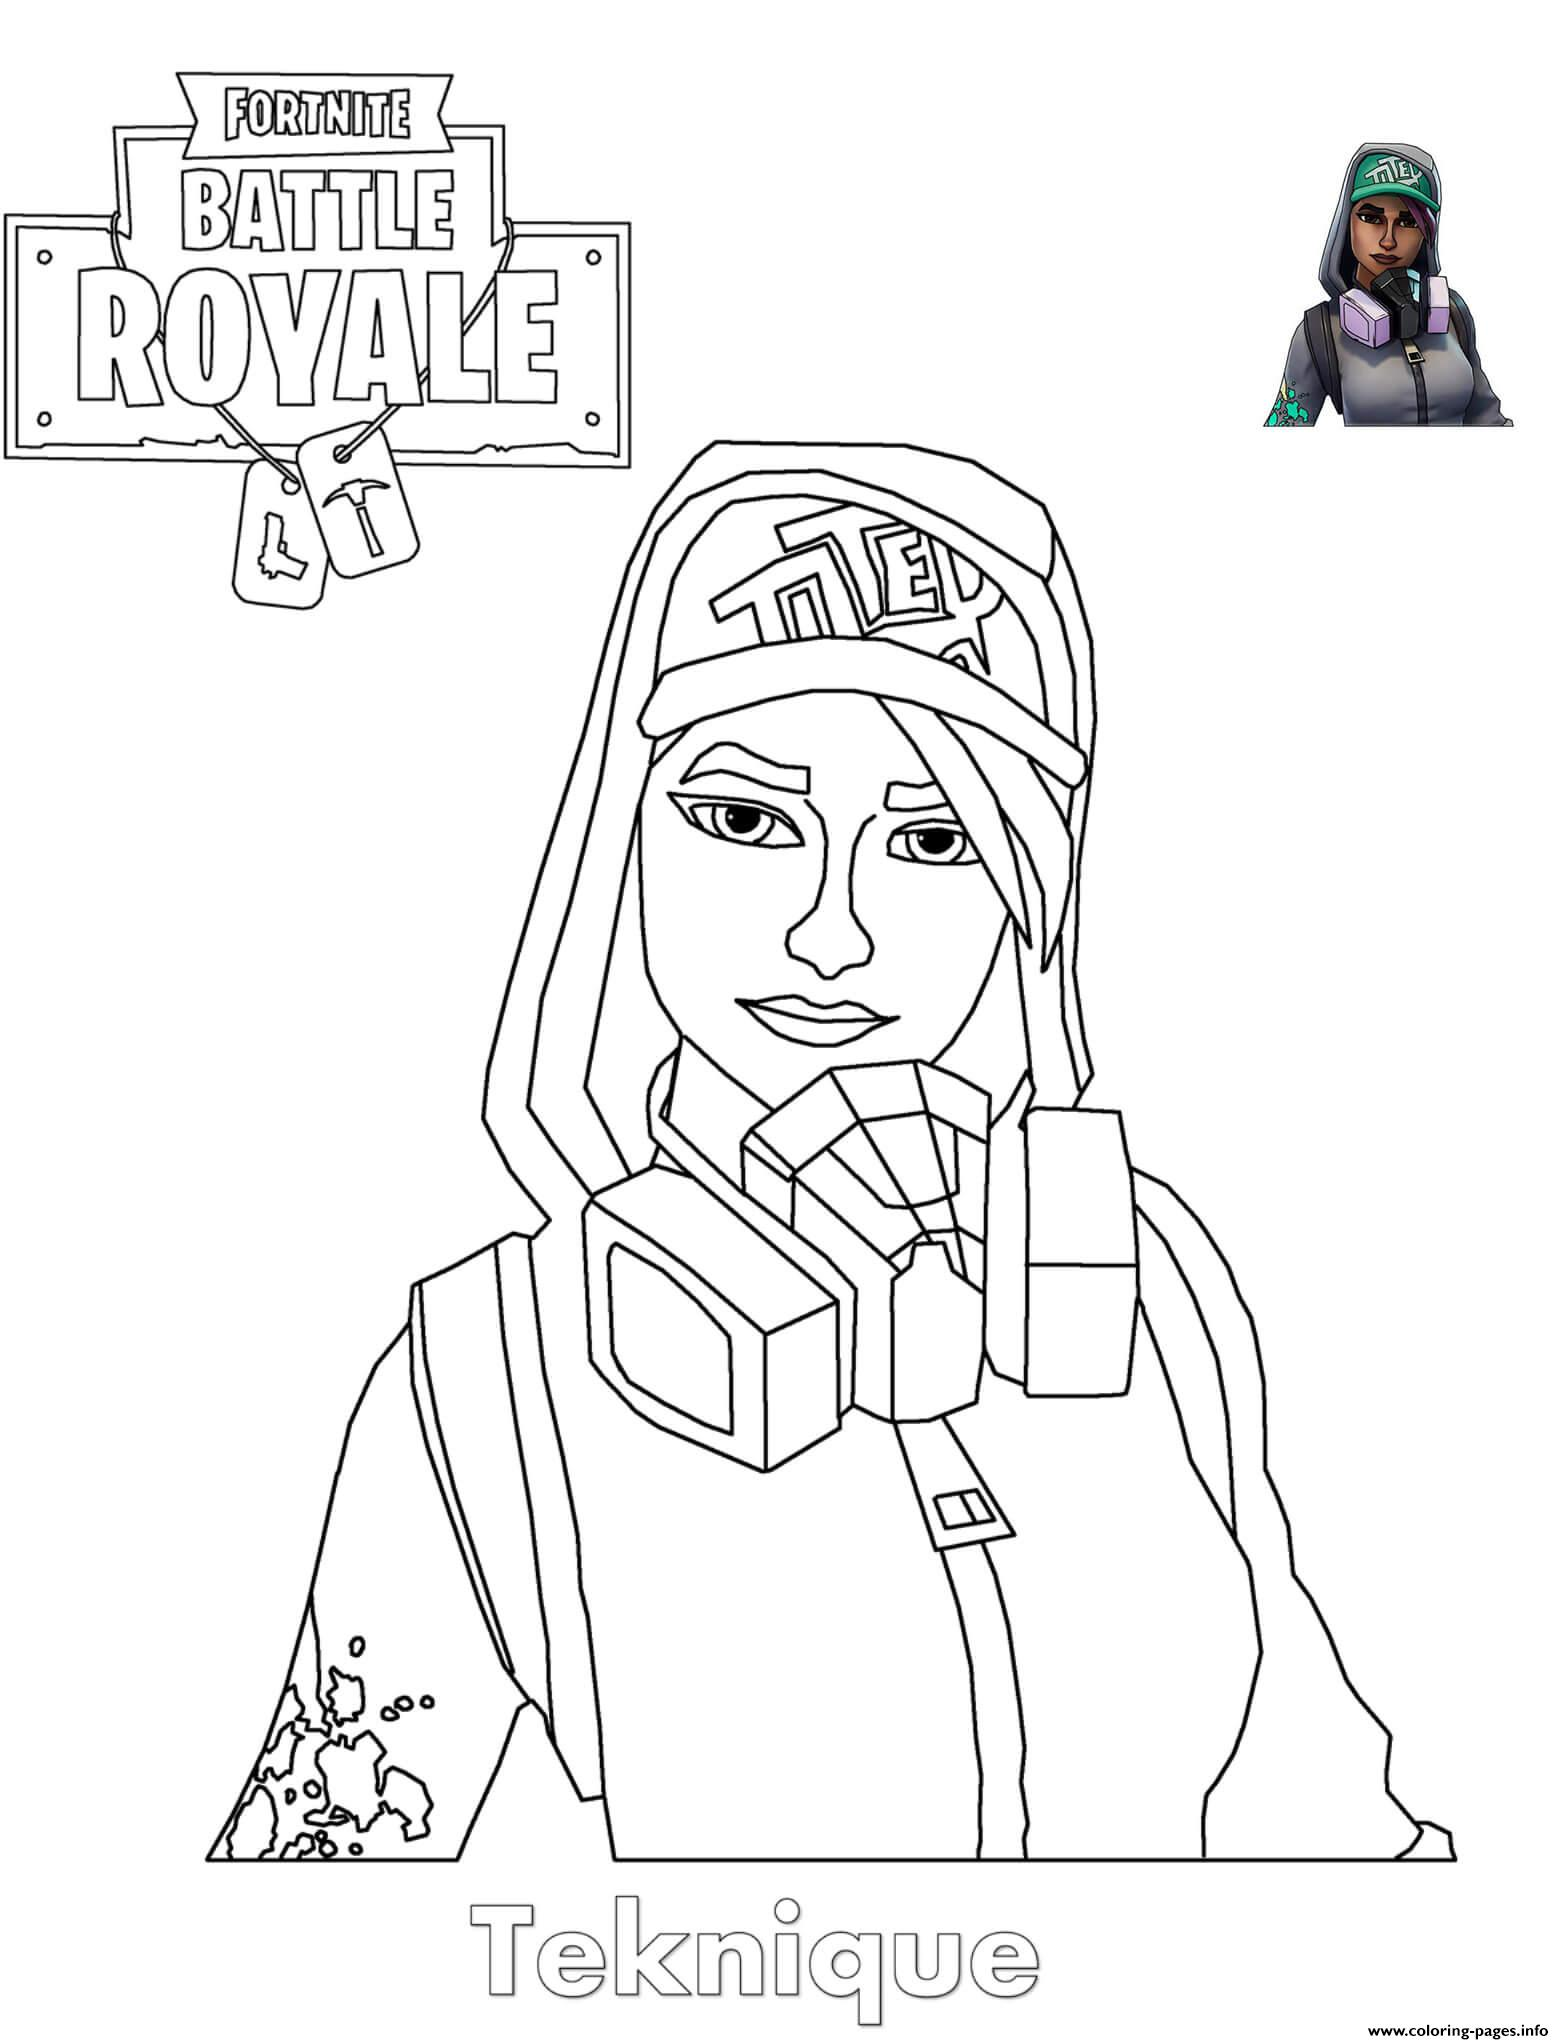 Teknique Fortnite Girl Coloring Pages Printable